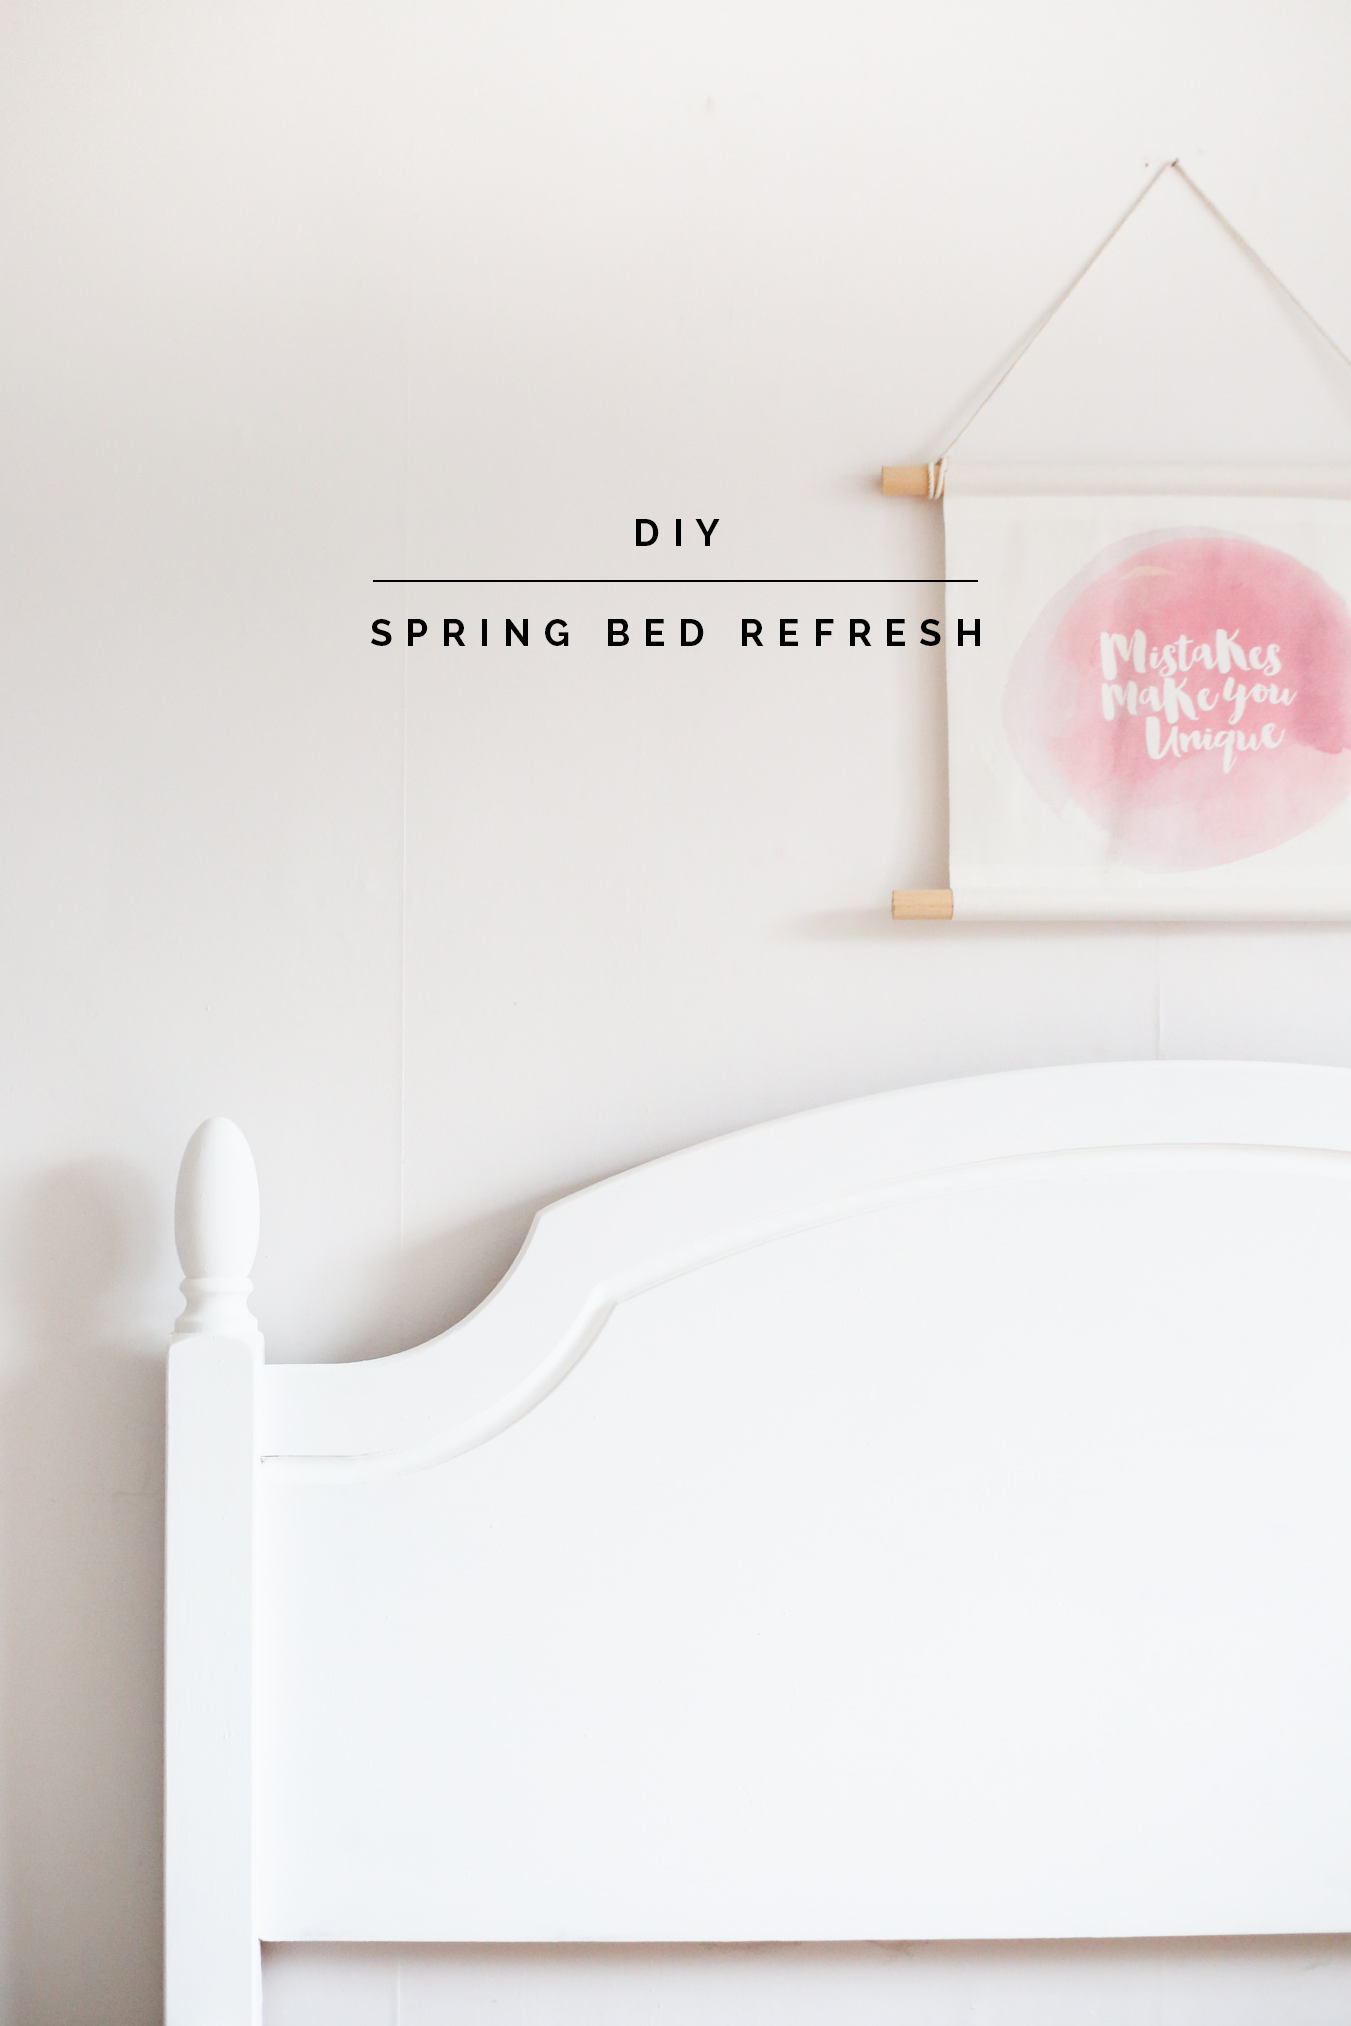 DIY Spring Bed Refresh | @fallfordiy